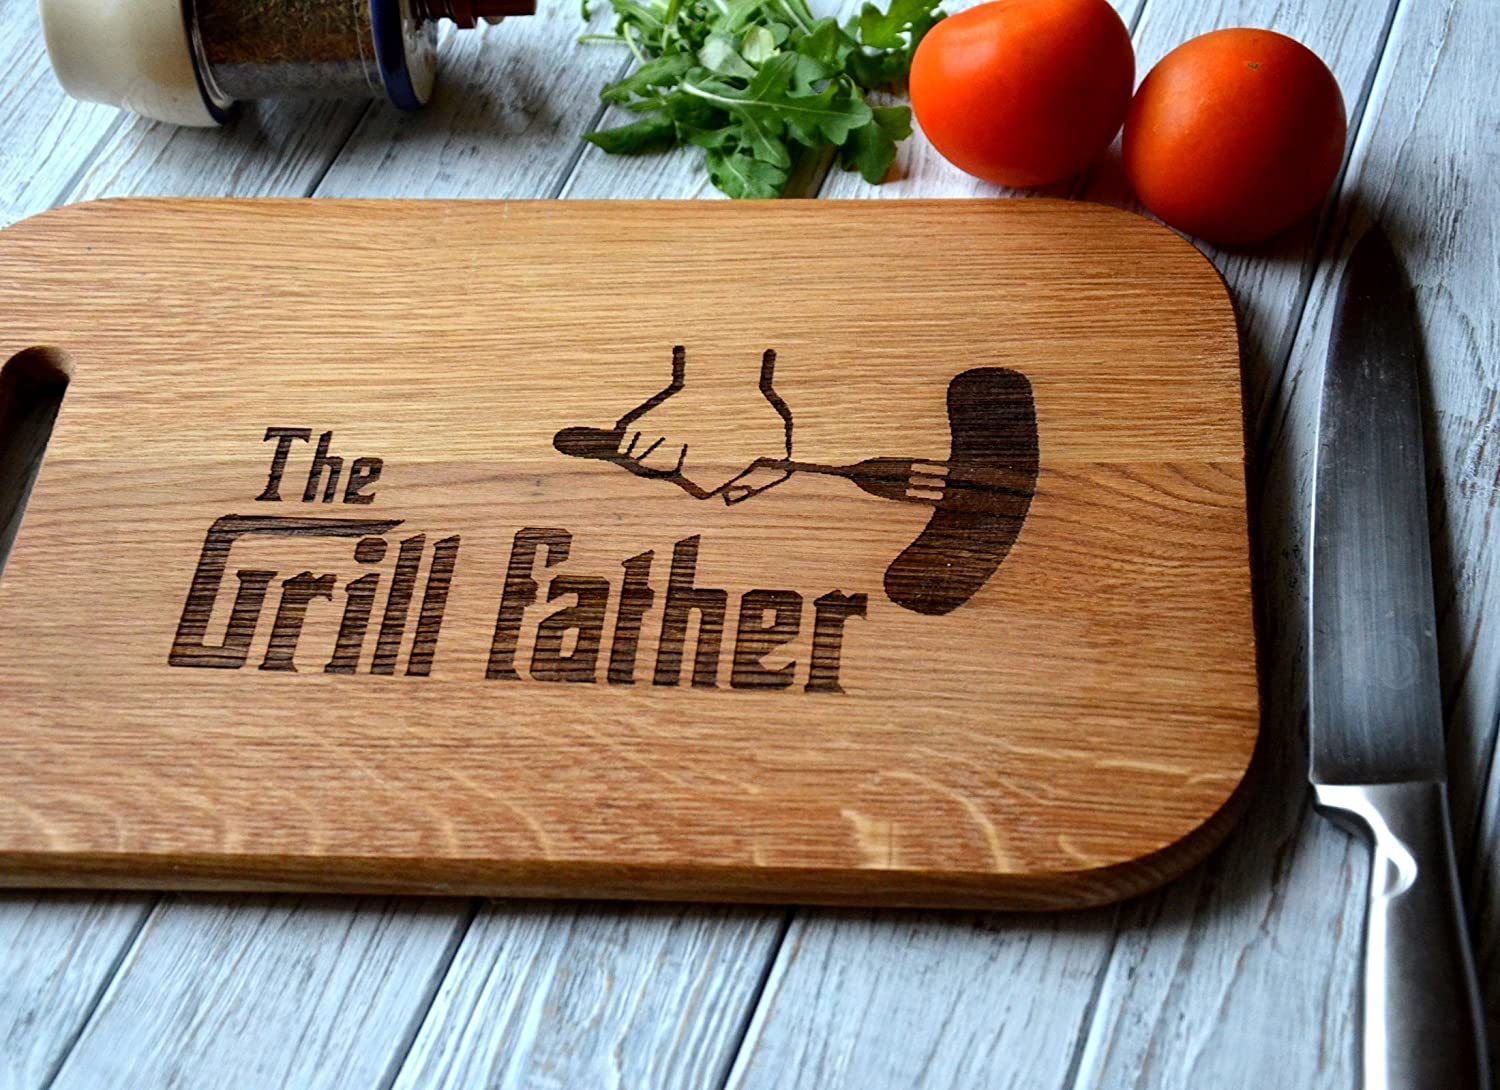 Cutting Wooden Board Fathers Day Gift idea for Father Engraved Personalized Birthday Housewarming New Home gift Dad Men Husband 14.5 x 9.25